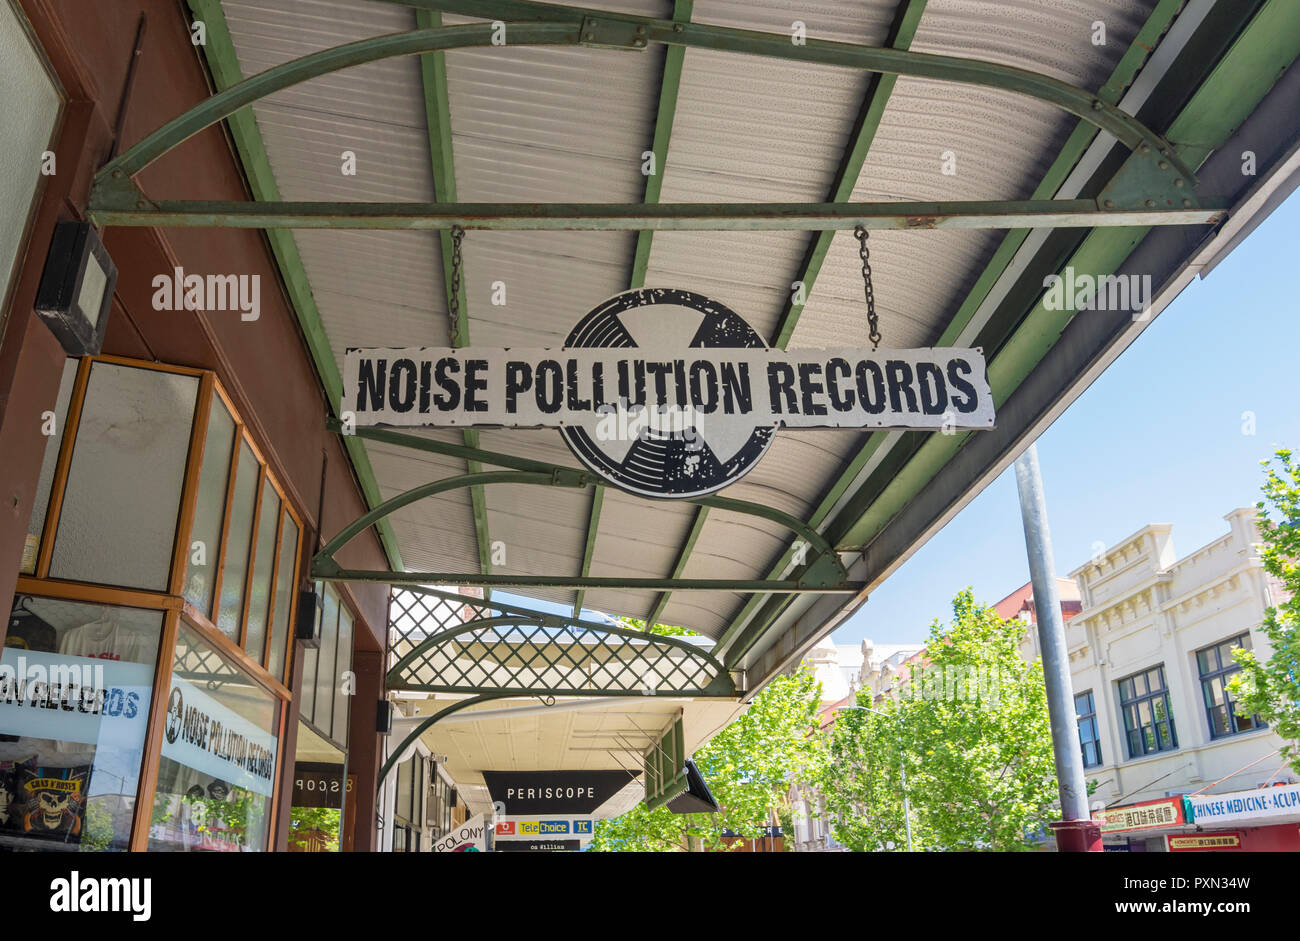 Noise Pollution Records, a store along the vibrant William Street in Northbridge, Perth, Western Australia - Stock Image